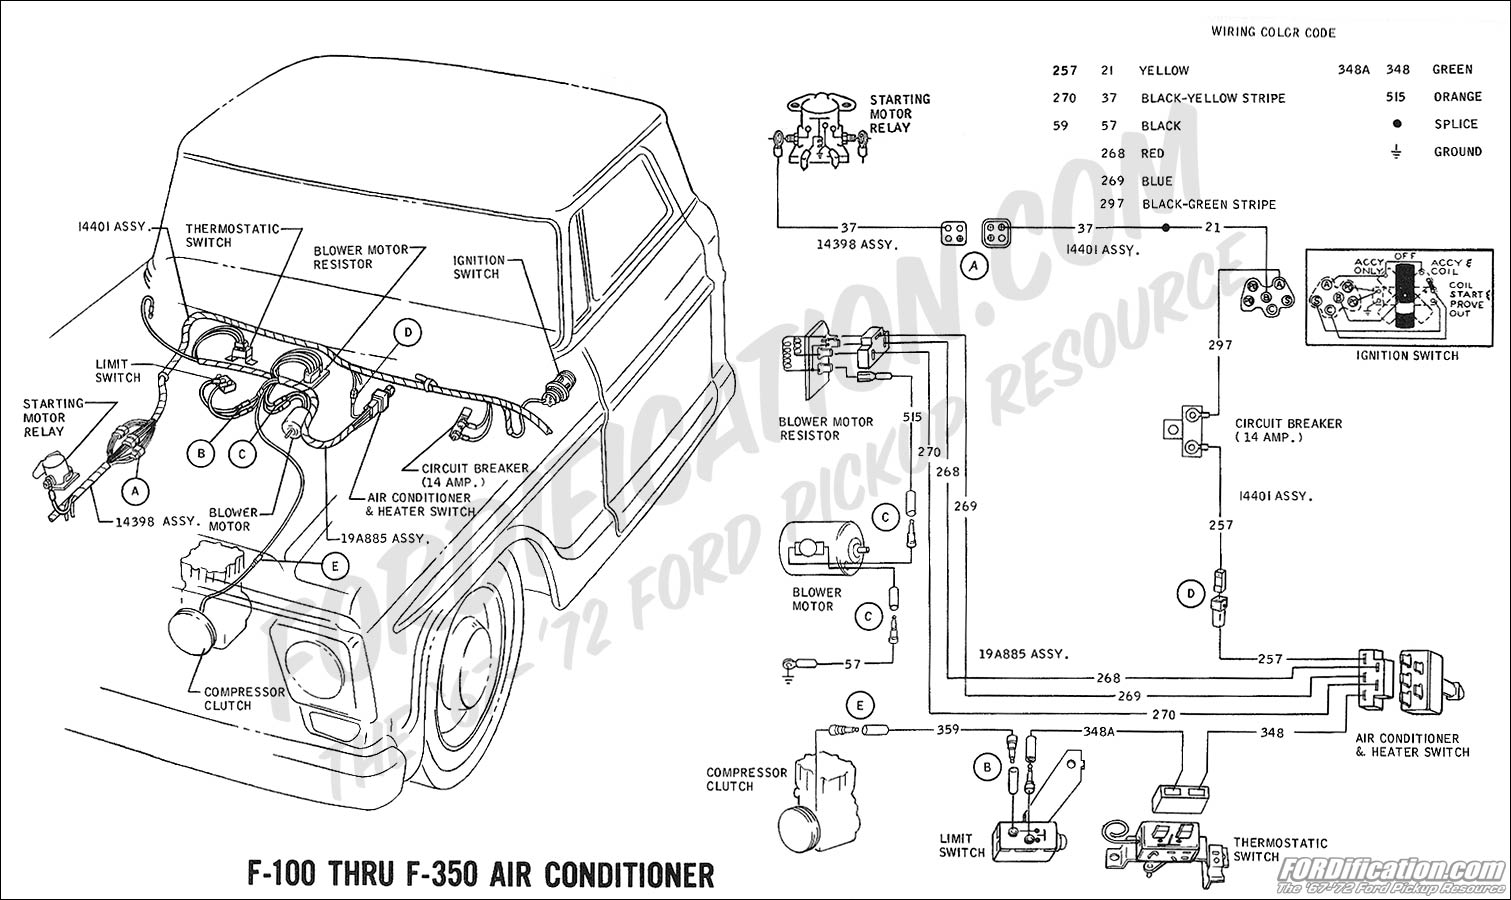 Ac Wiring Diagram Symbols Electrical Wiring Diagram together with 352850 2003 3 4l Impala Several Problems additionally 7omh5 Lincoln Continental I M Looking Fuel Pump Relay as well 1997 S10 Wiring Schematic likewise RepairGuideContent. on 2000 ford mustang fuel pump relay location